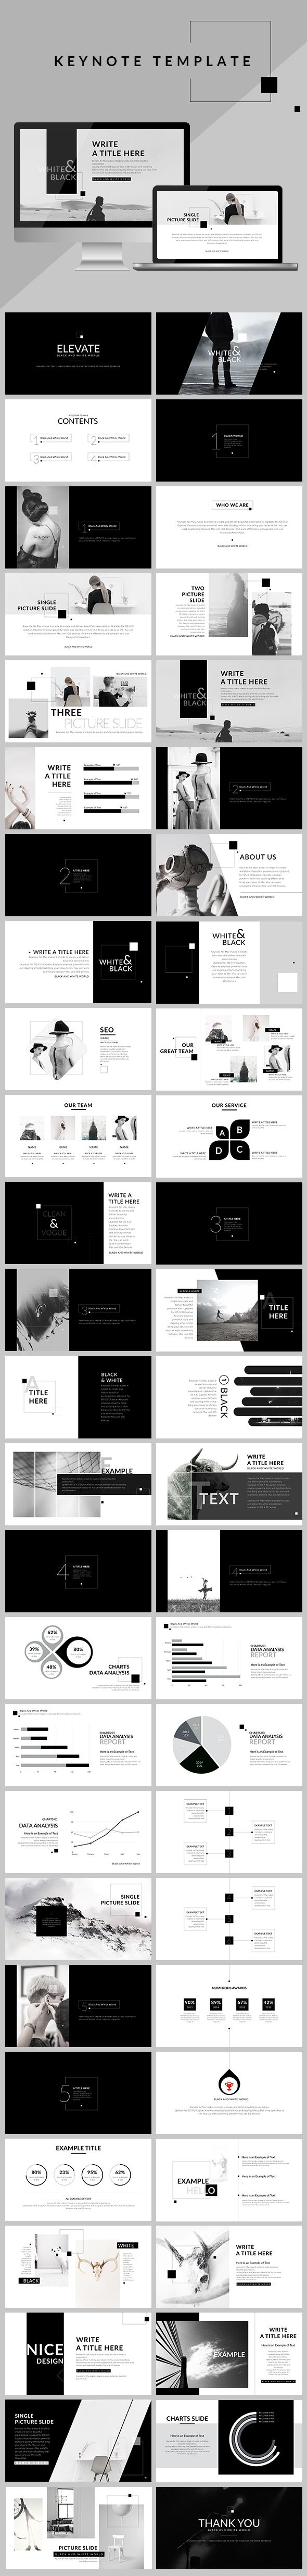 Black & White - Clean Keynote Template - Creative Keynote Templates                                                                                                                                                                                 More                                                                                                                                                                                 More